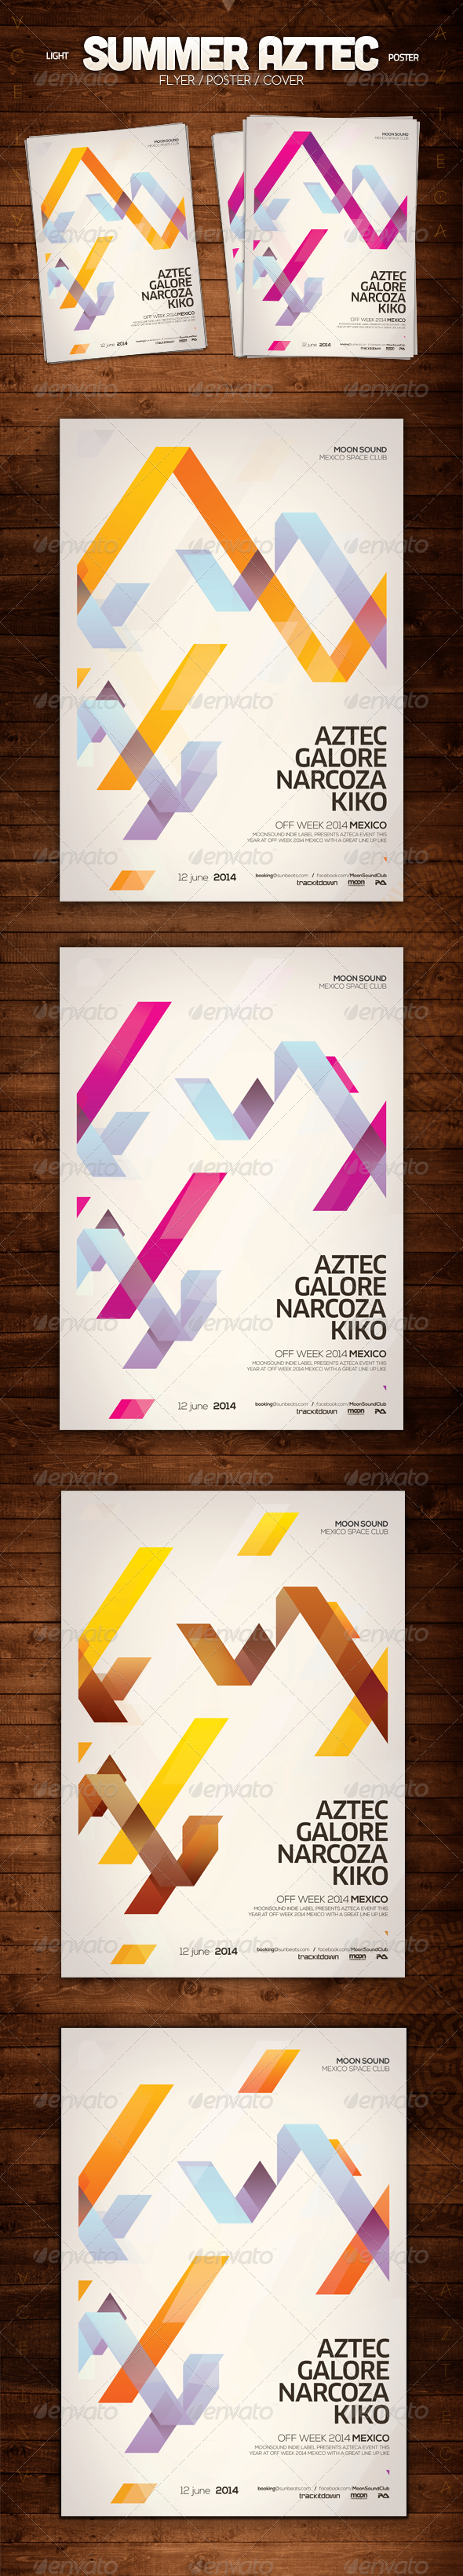 GraphicRiver Summer Aztec Poster 7900627